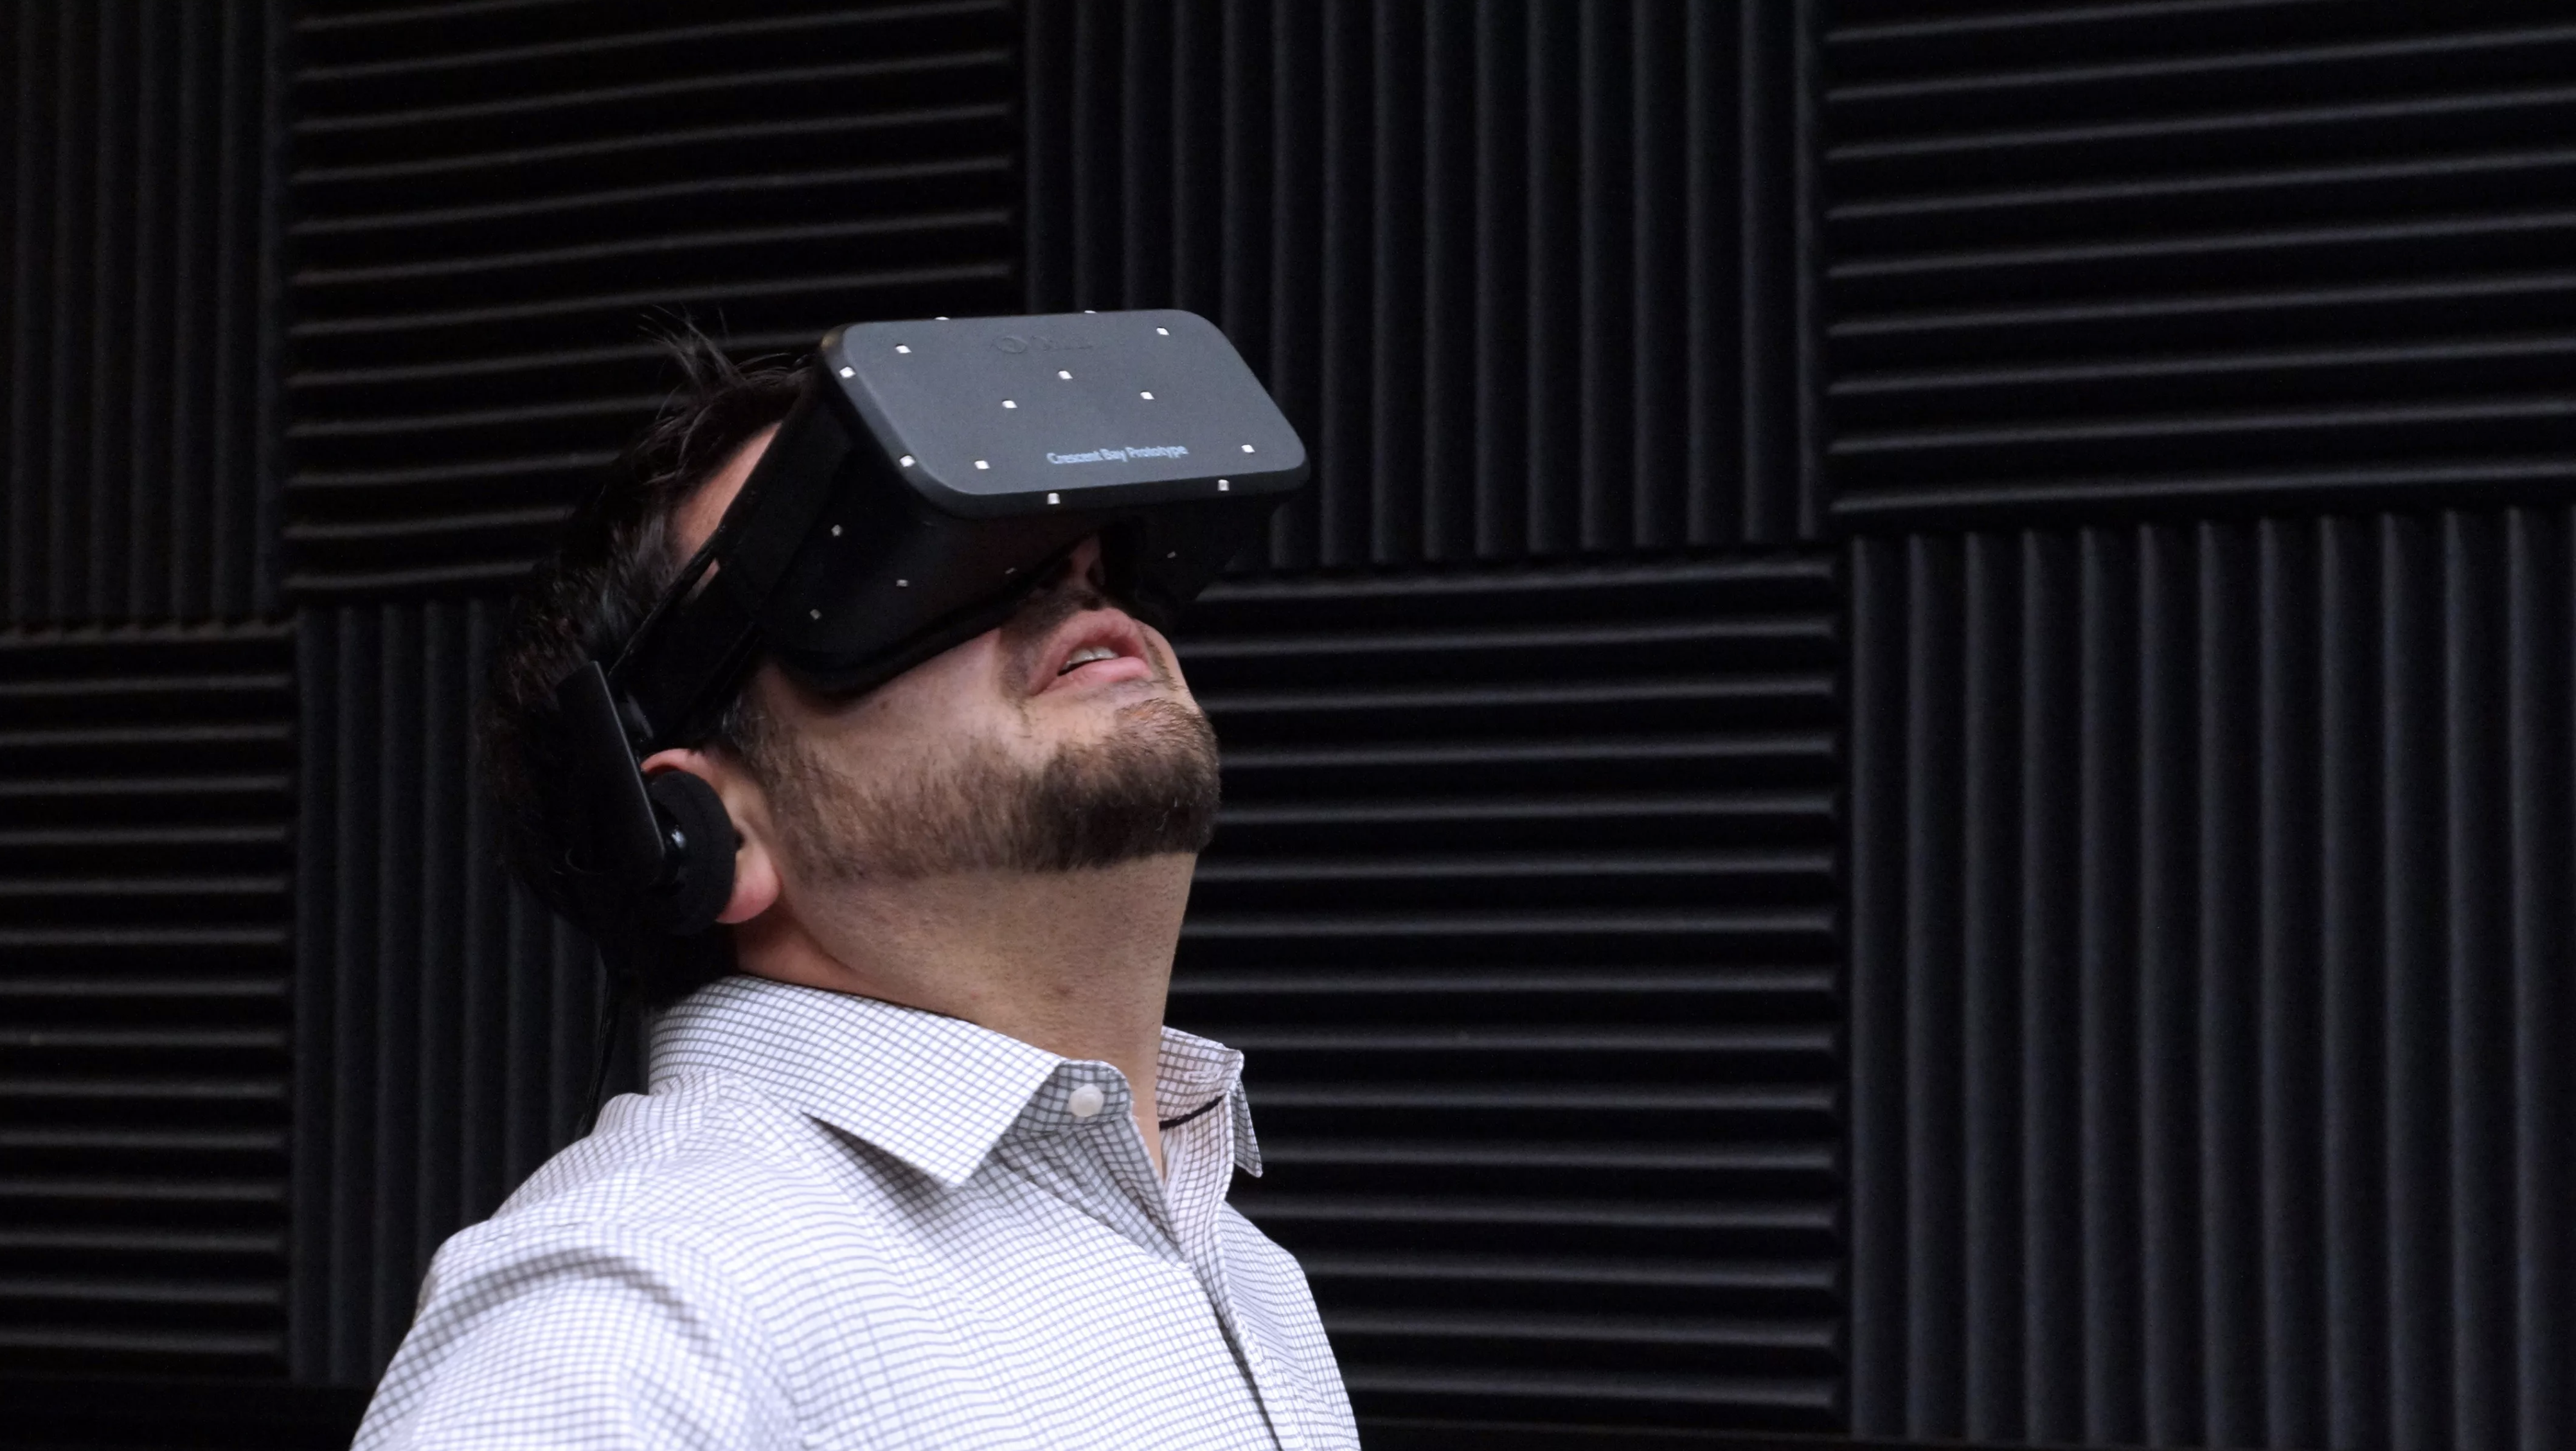 Video: The dream of Oculus VR: Five years later